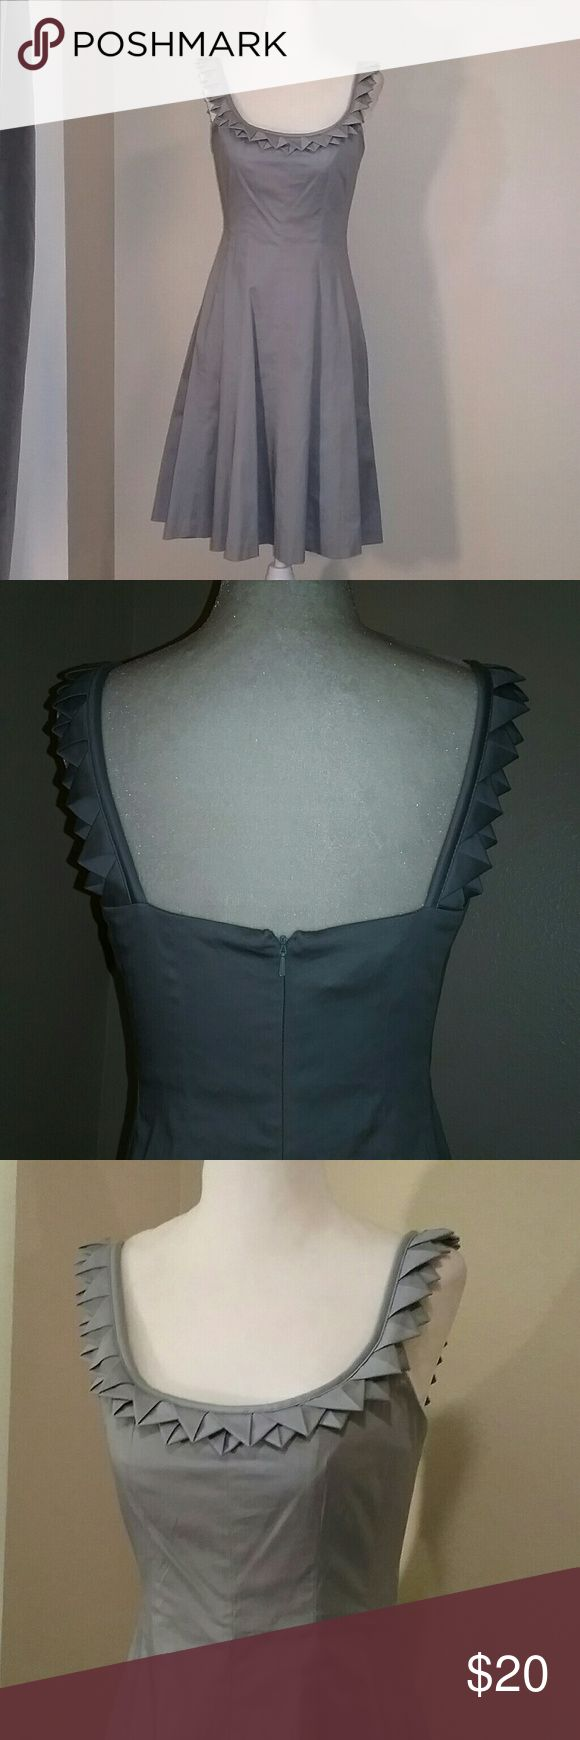 "Nine West Scoop Neck Grey Dress Sz 2 Beautiful cotton dress with unique pointed pleating around neckline, and loose pleating in skirt. 12"" back zipper. 35"" long from nape of neck to lower back hem. Bust area is lined. EUC. 98% cotton. 2% spandex. Dry clean. Nine West Dresses"